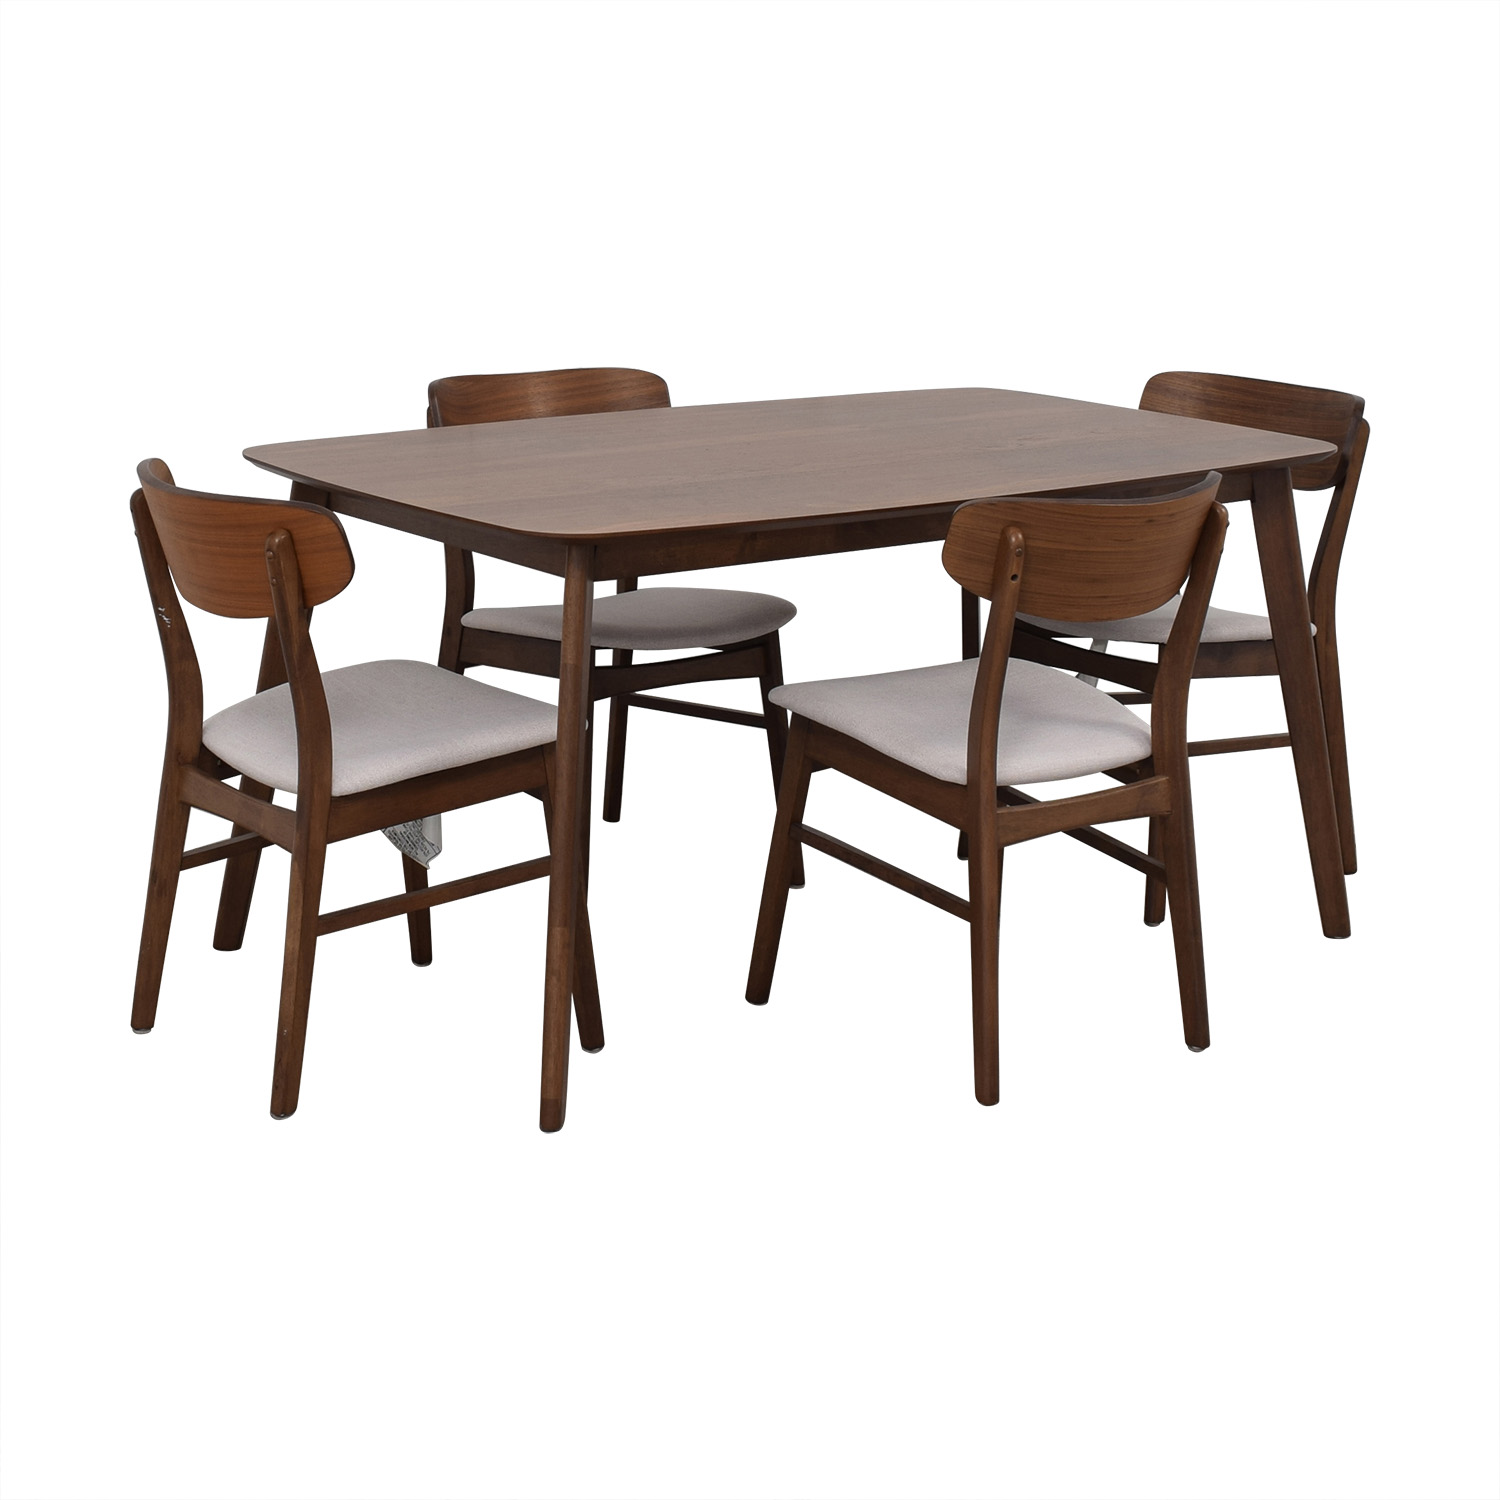 All Modern Upholstered Dining Set / Tables